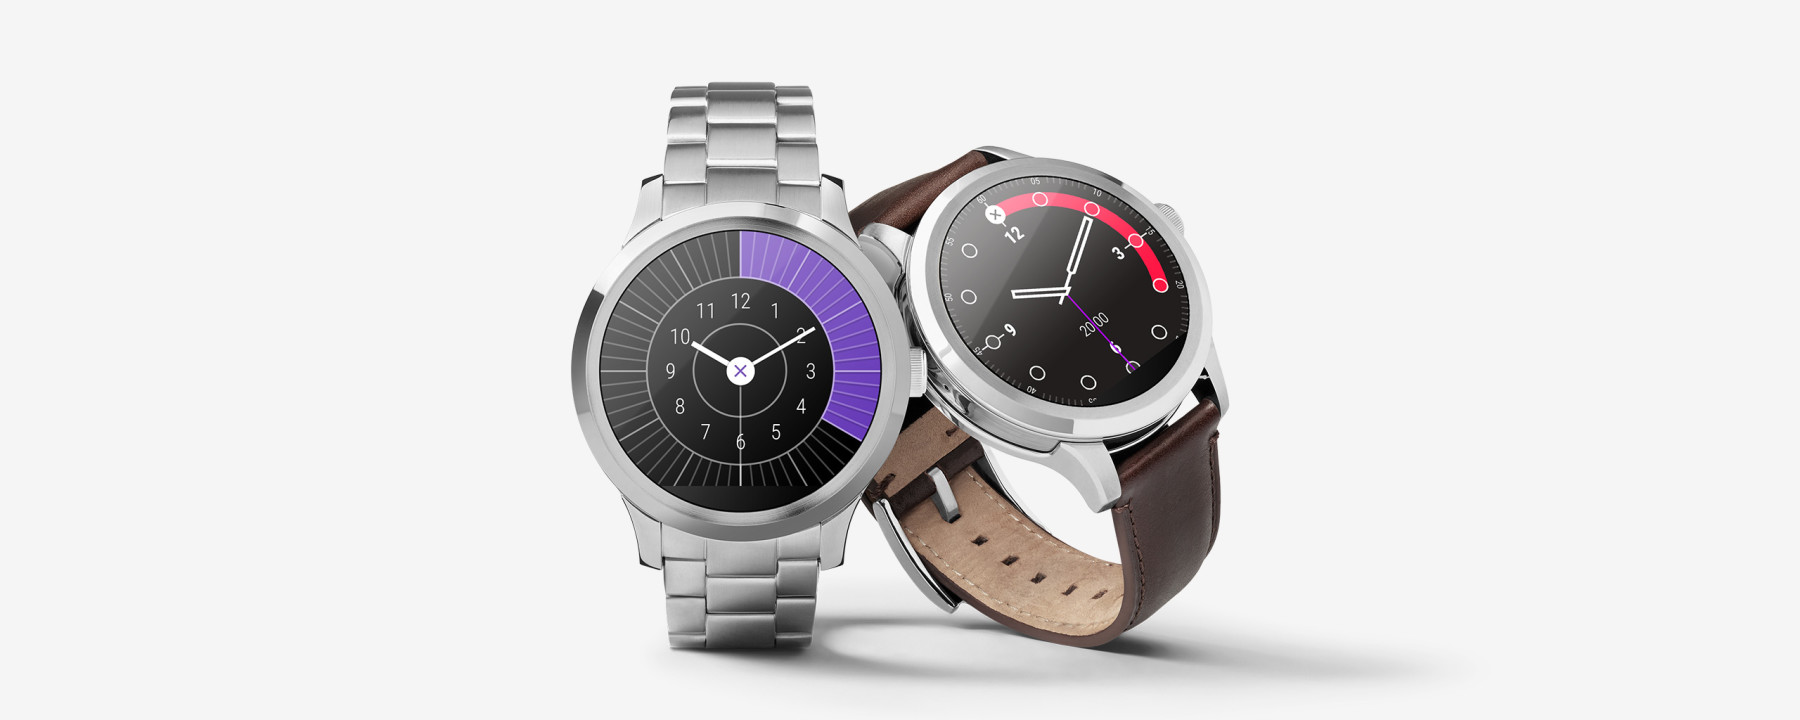 Android Wear Watch Face Design